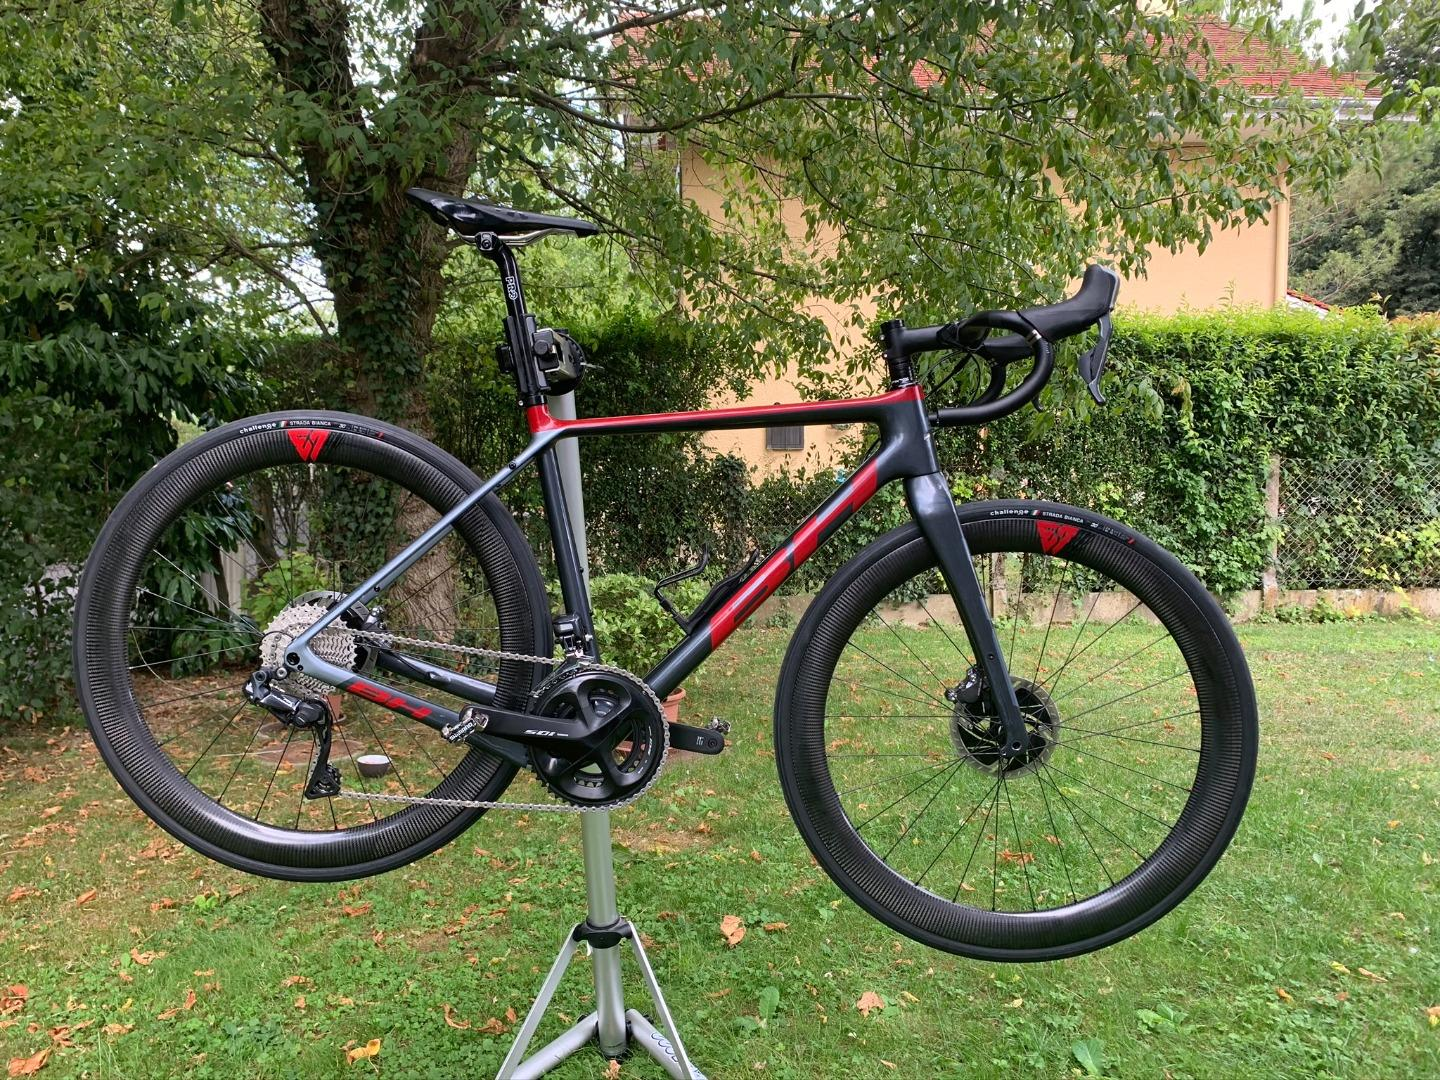 new-bike-build-bh-road-frame-with-light-bicycle-wr50-50mm-carbon-wheels